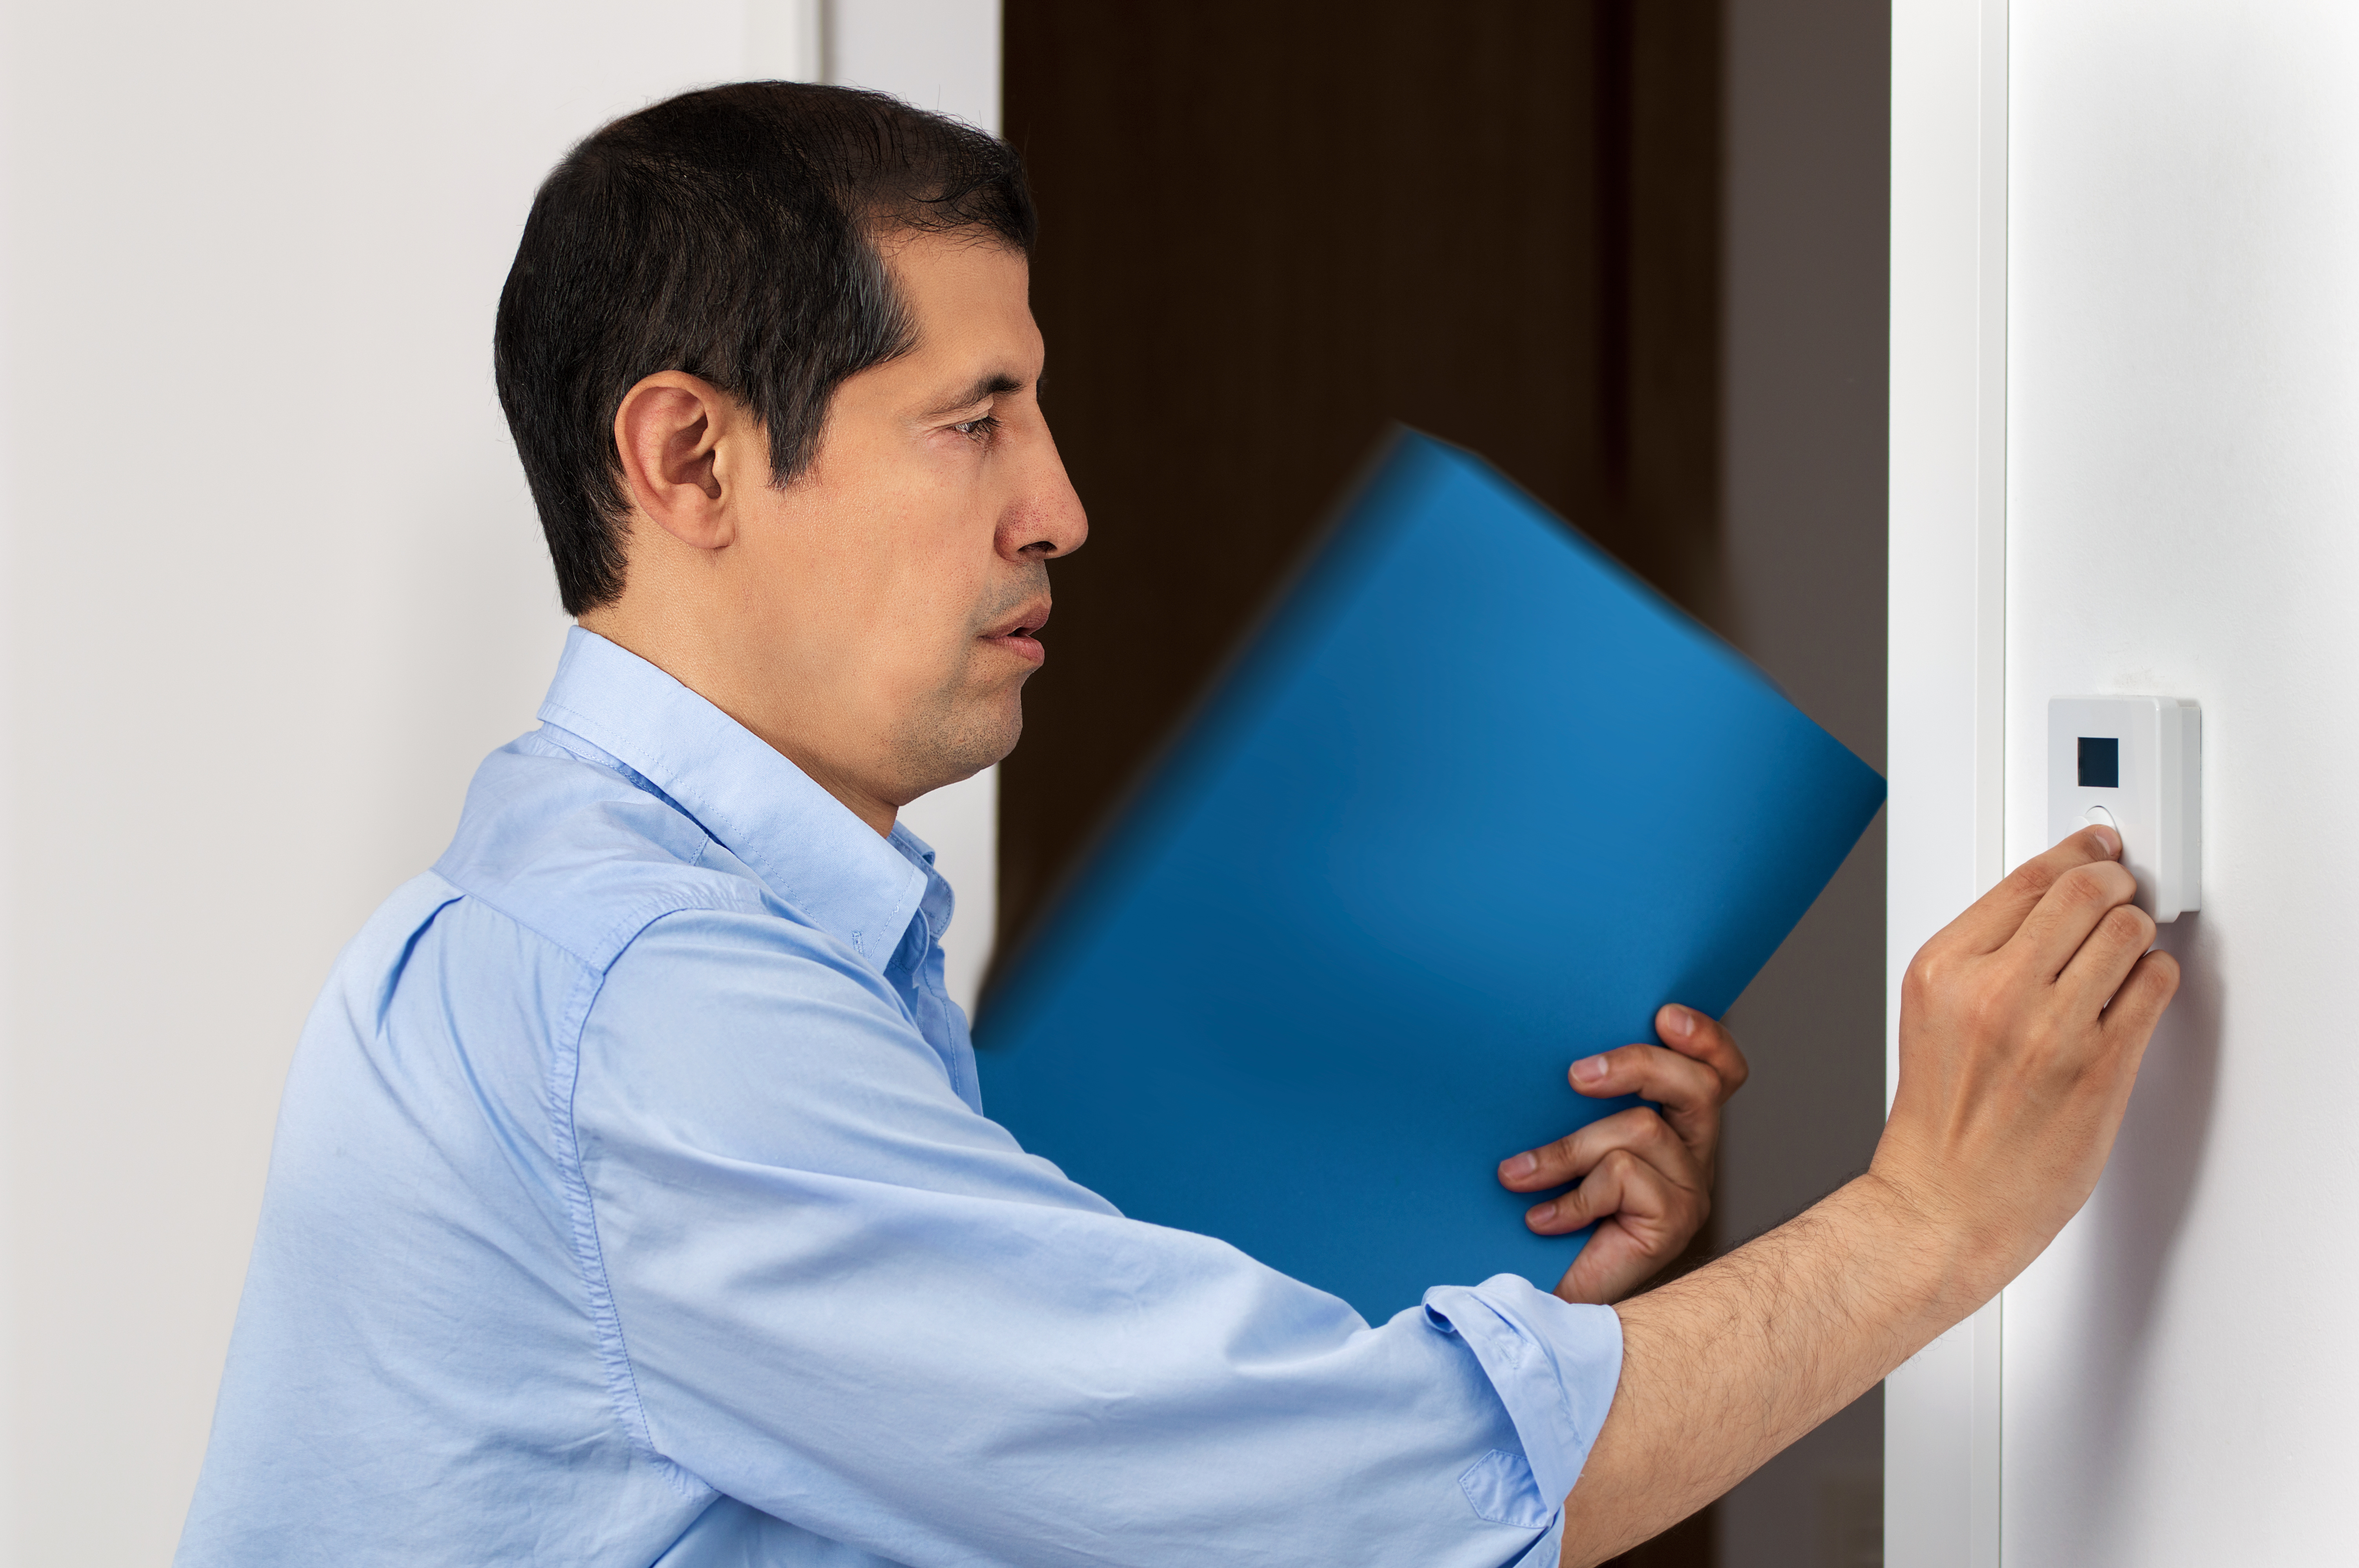 Man entering code into security system module